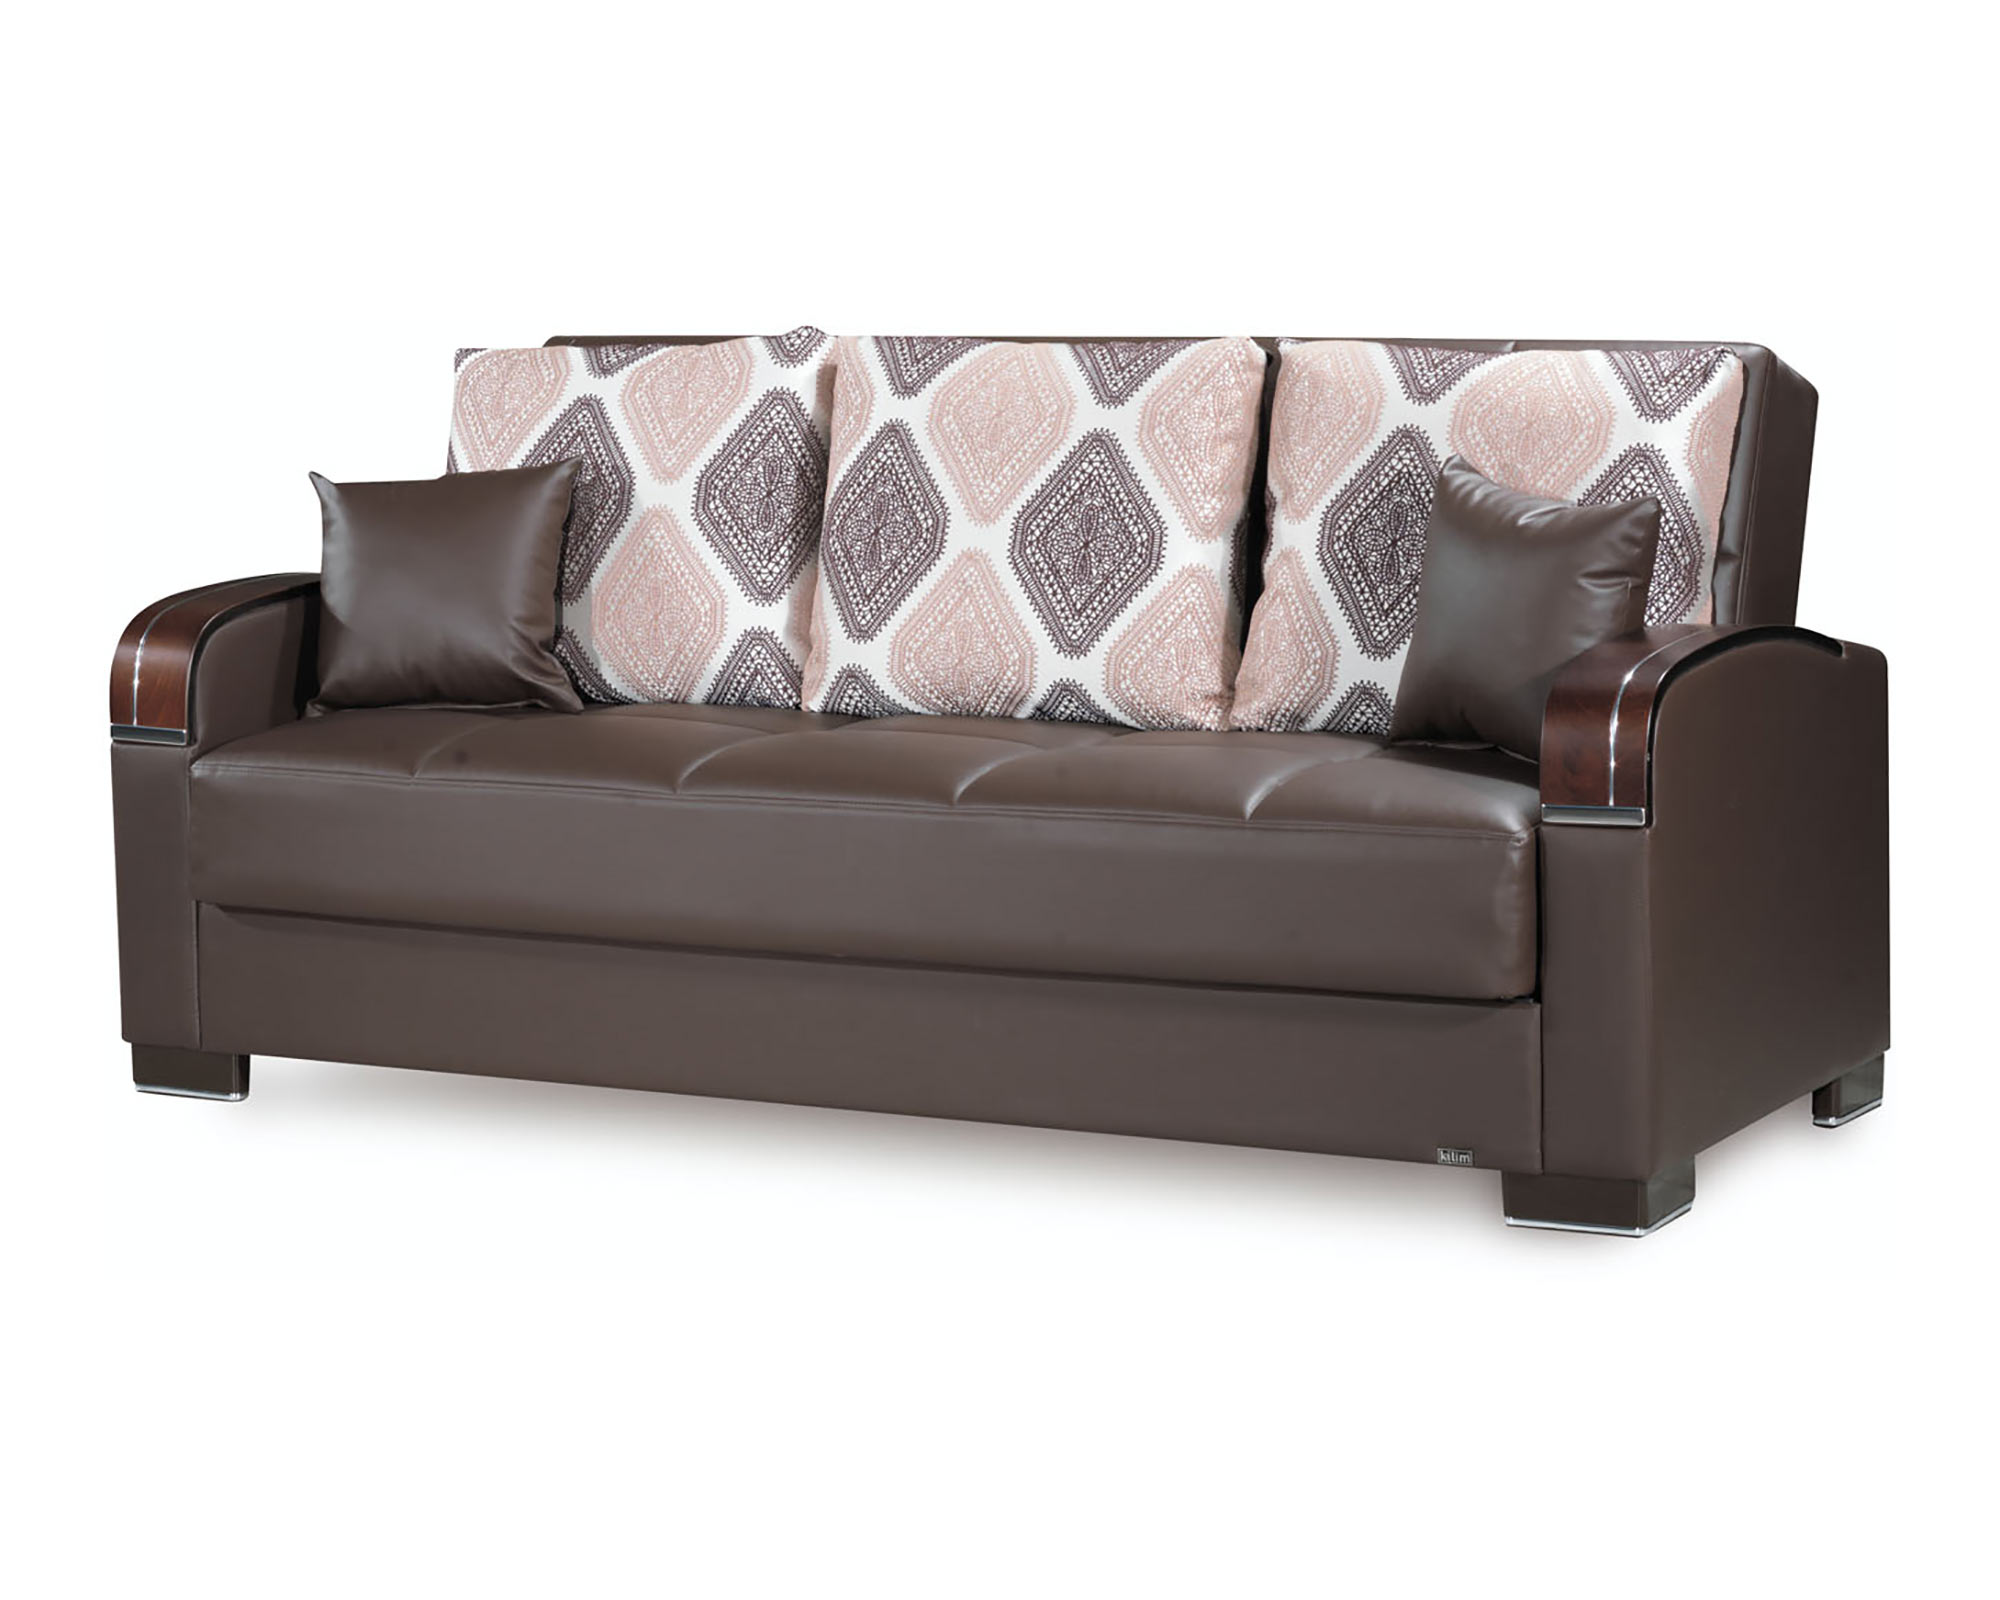 Mobimax Brown PU Leather Convertible Sofa by Casamode